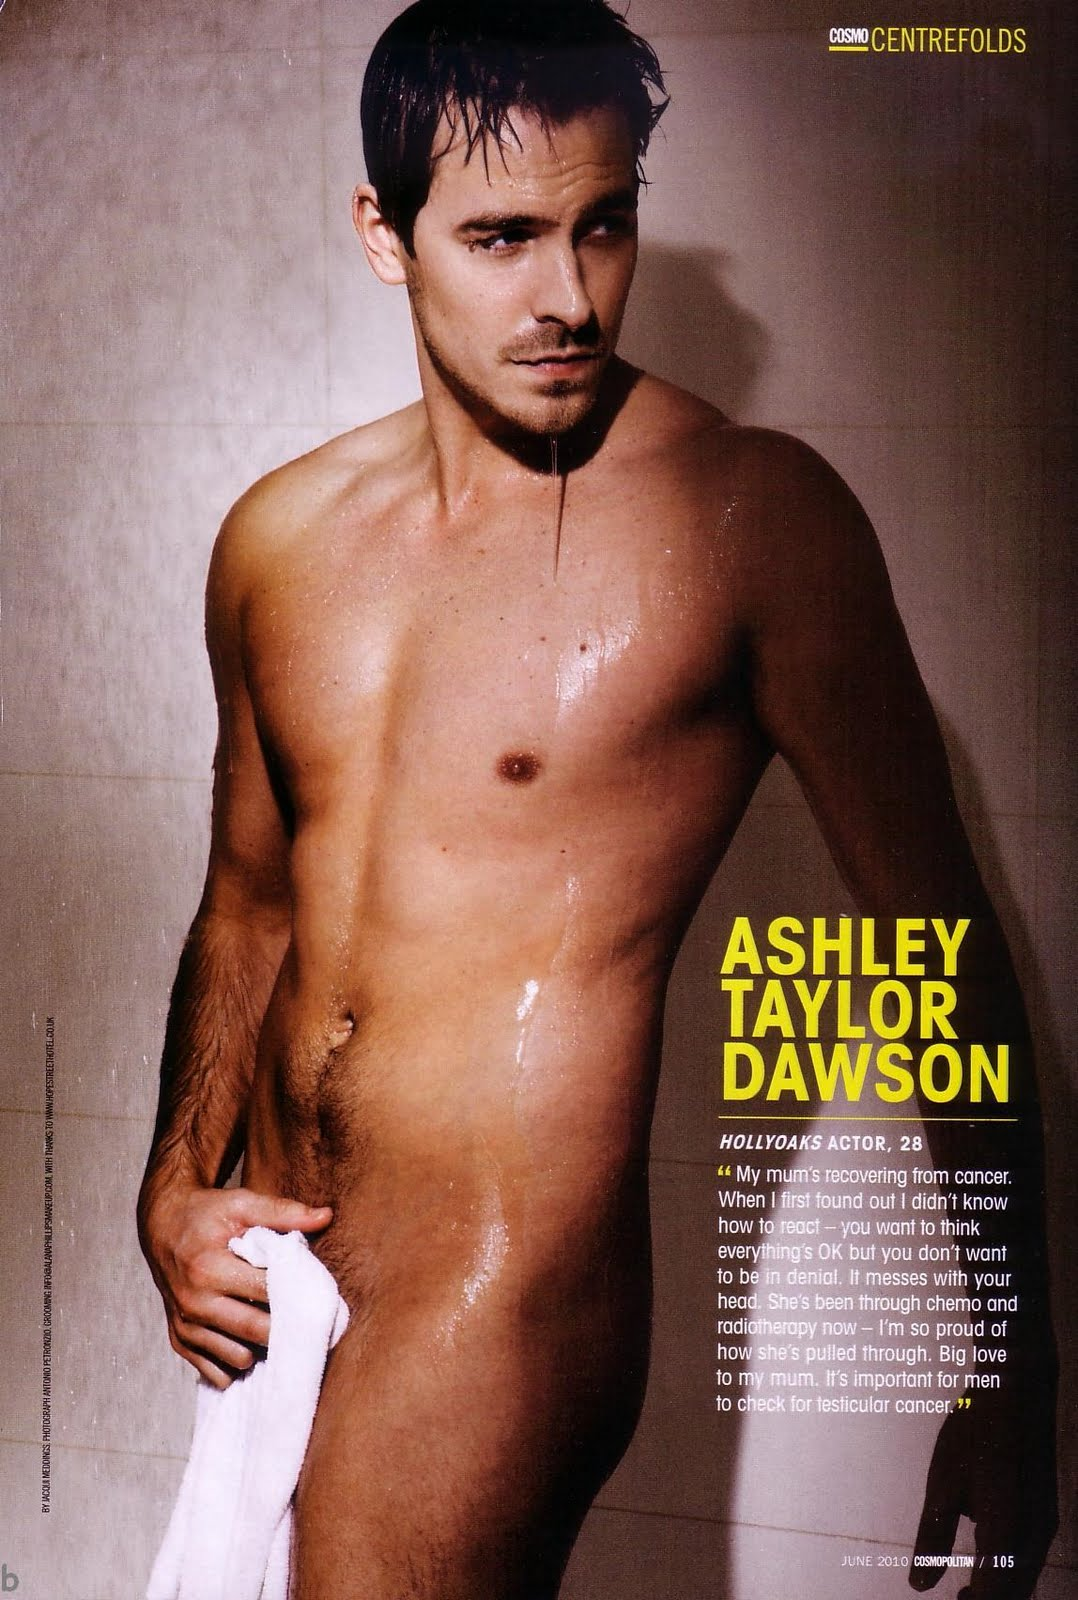 Dustin Johnson Shirtless http://doulikeitlikethat.blogspot.com/2010/05/ashley-taylor-dawson-uk-cosmo.html